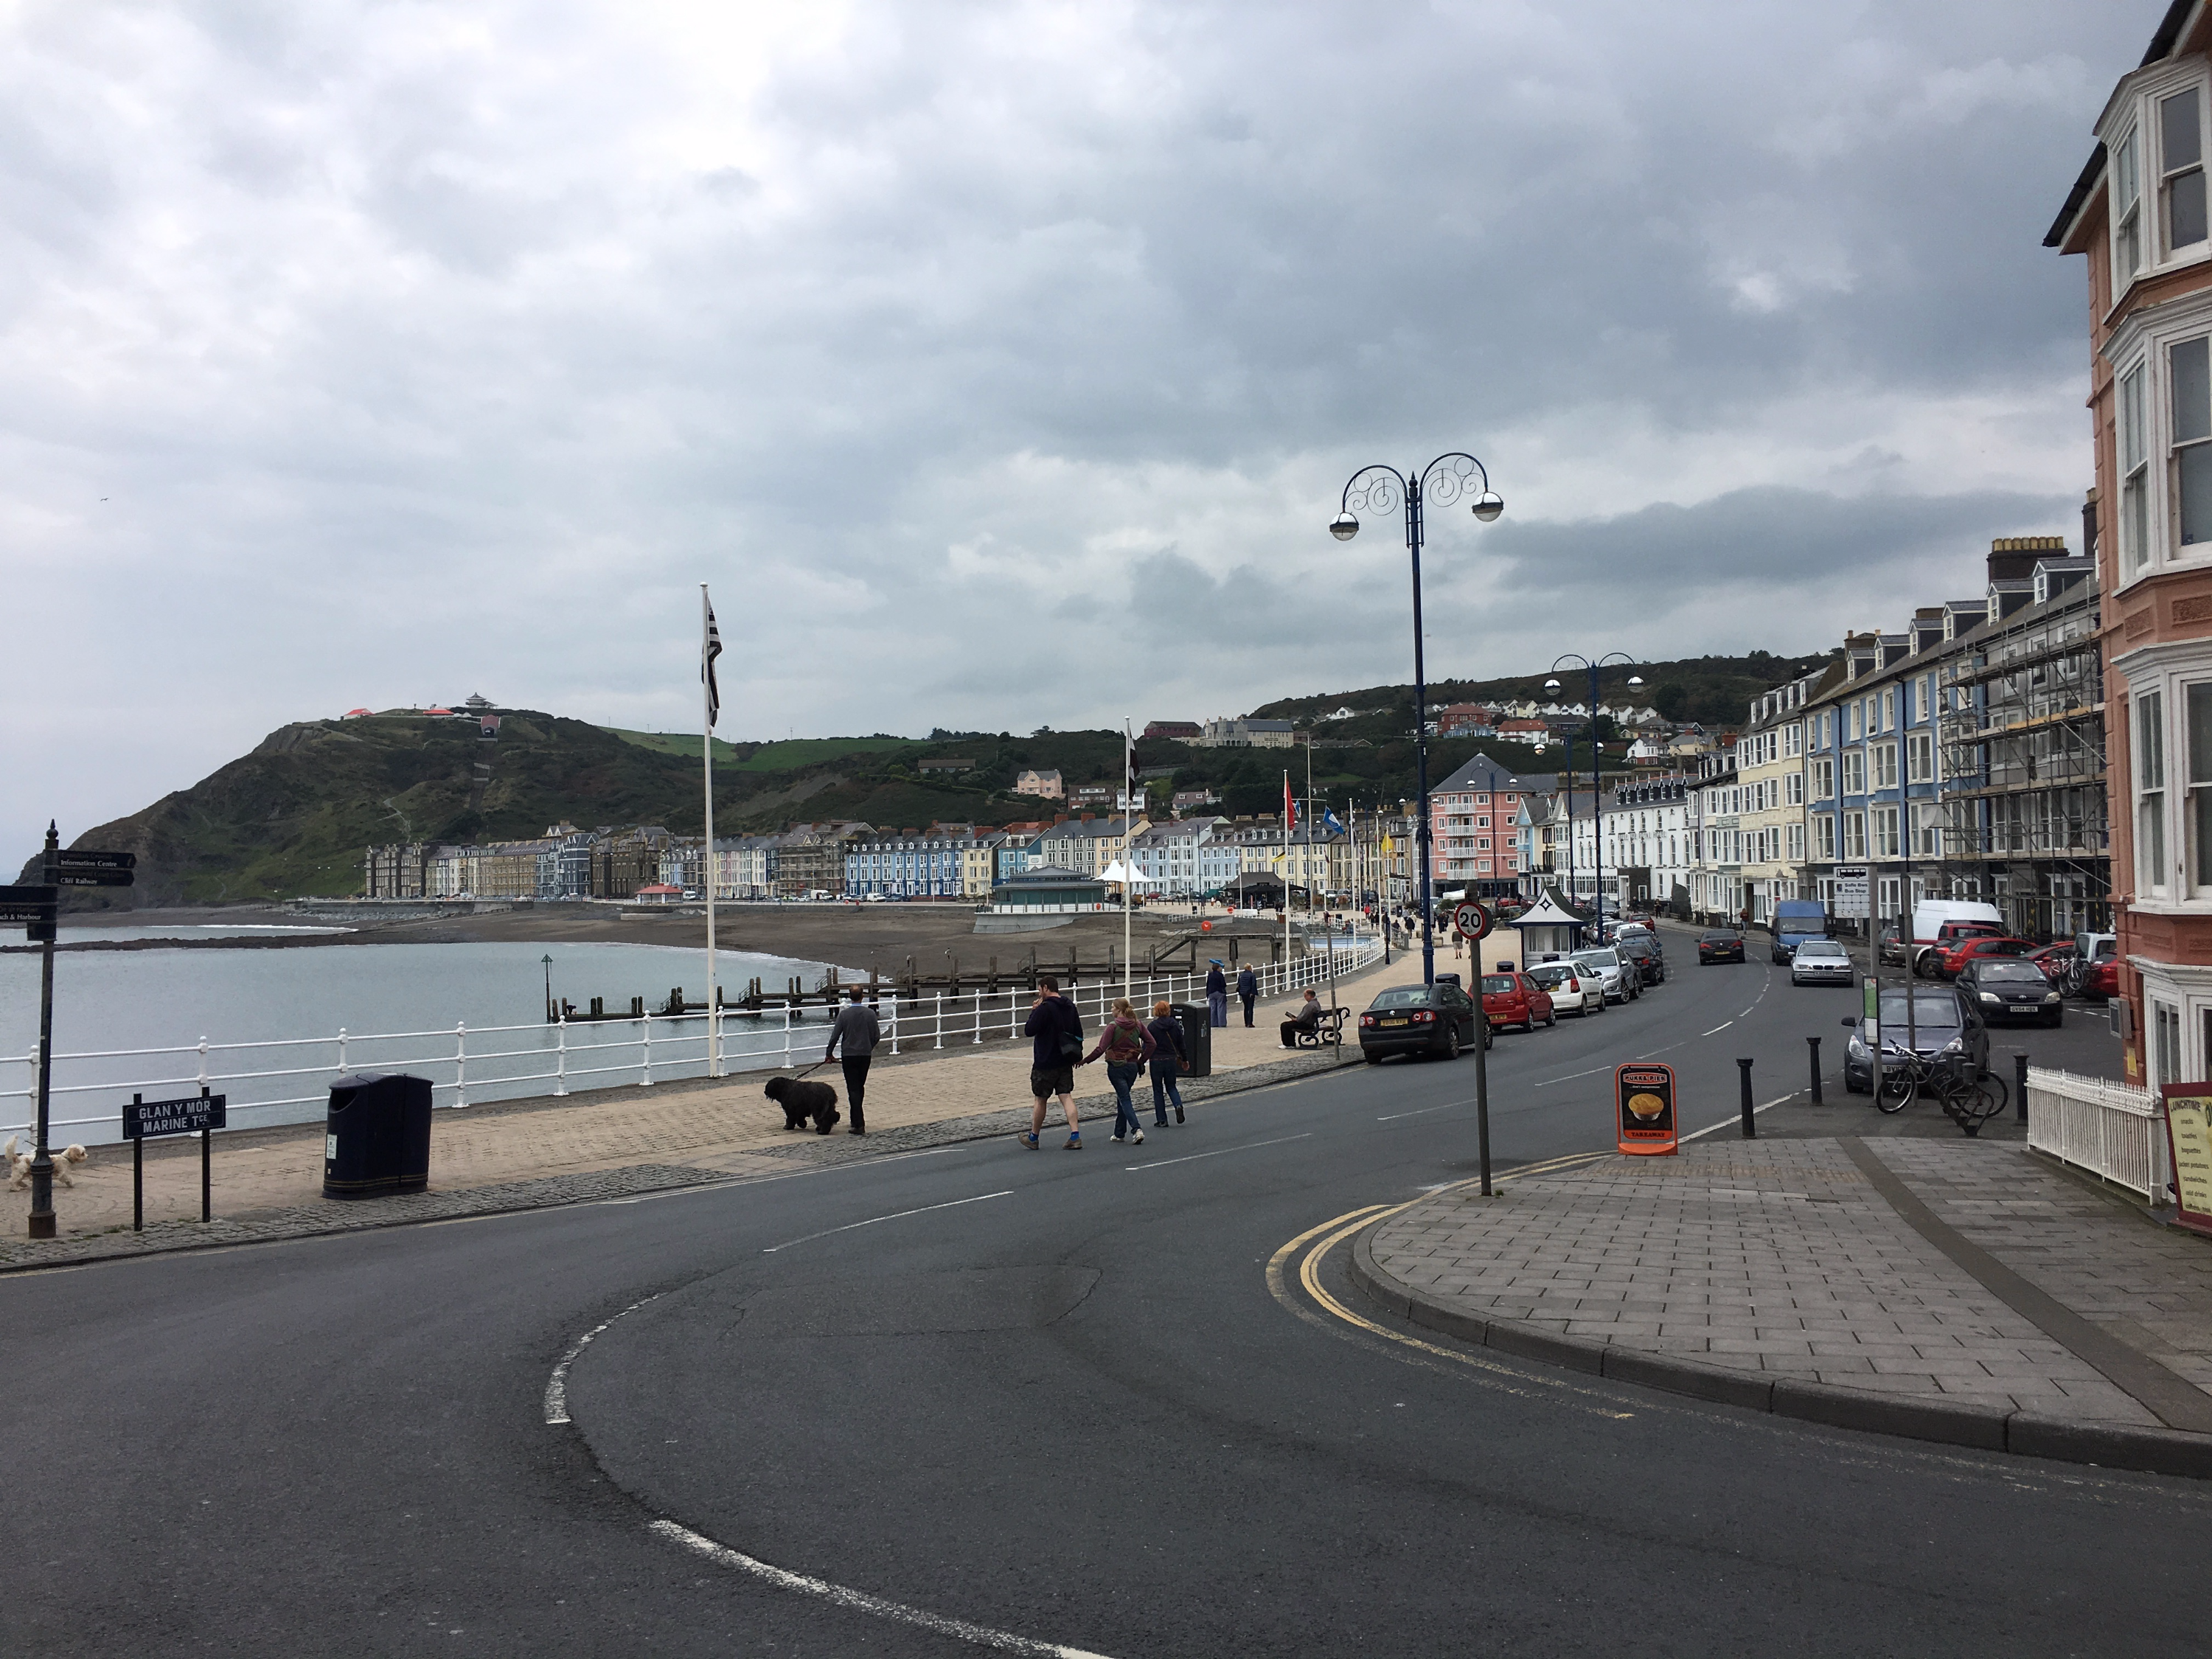 Phoe Travels to Aberystwyth, Wales in the United Kingdom